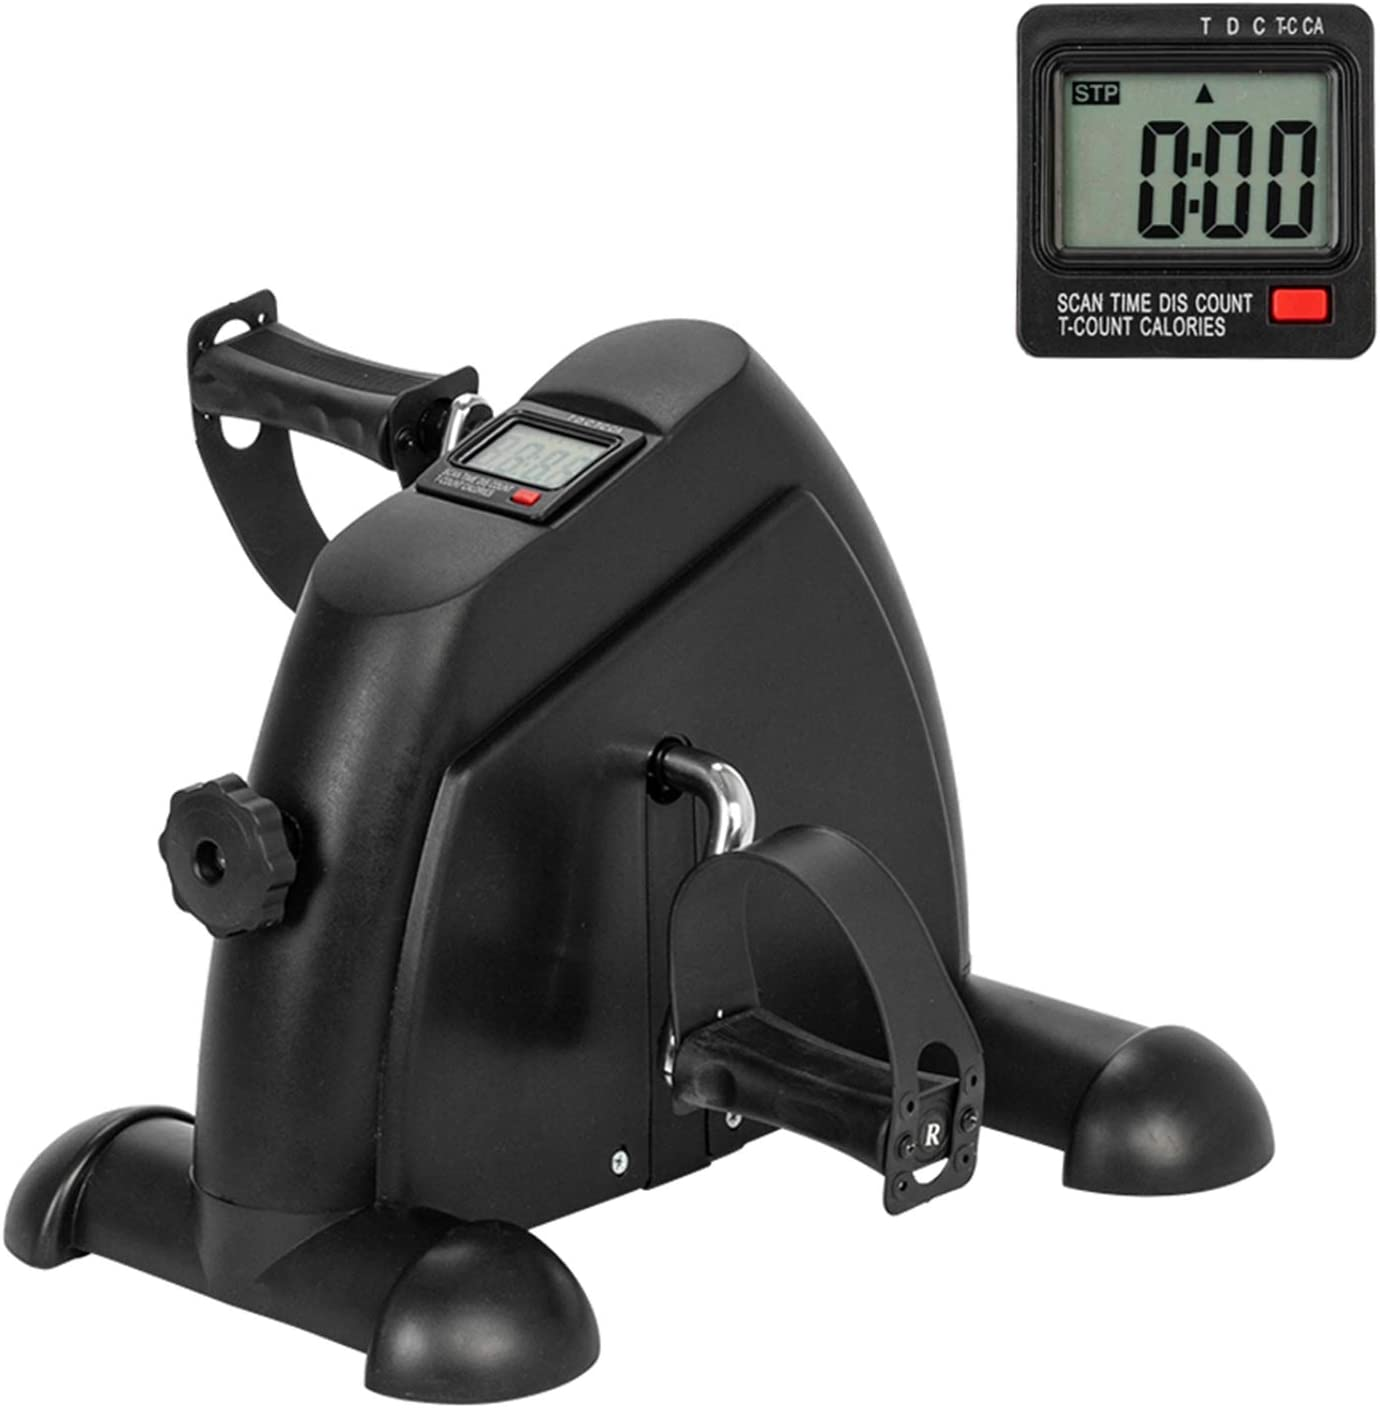 Mini Exercise Bike Denver Mall Portable Large discharge sale Pedal Feet and T Hands